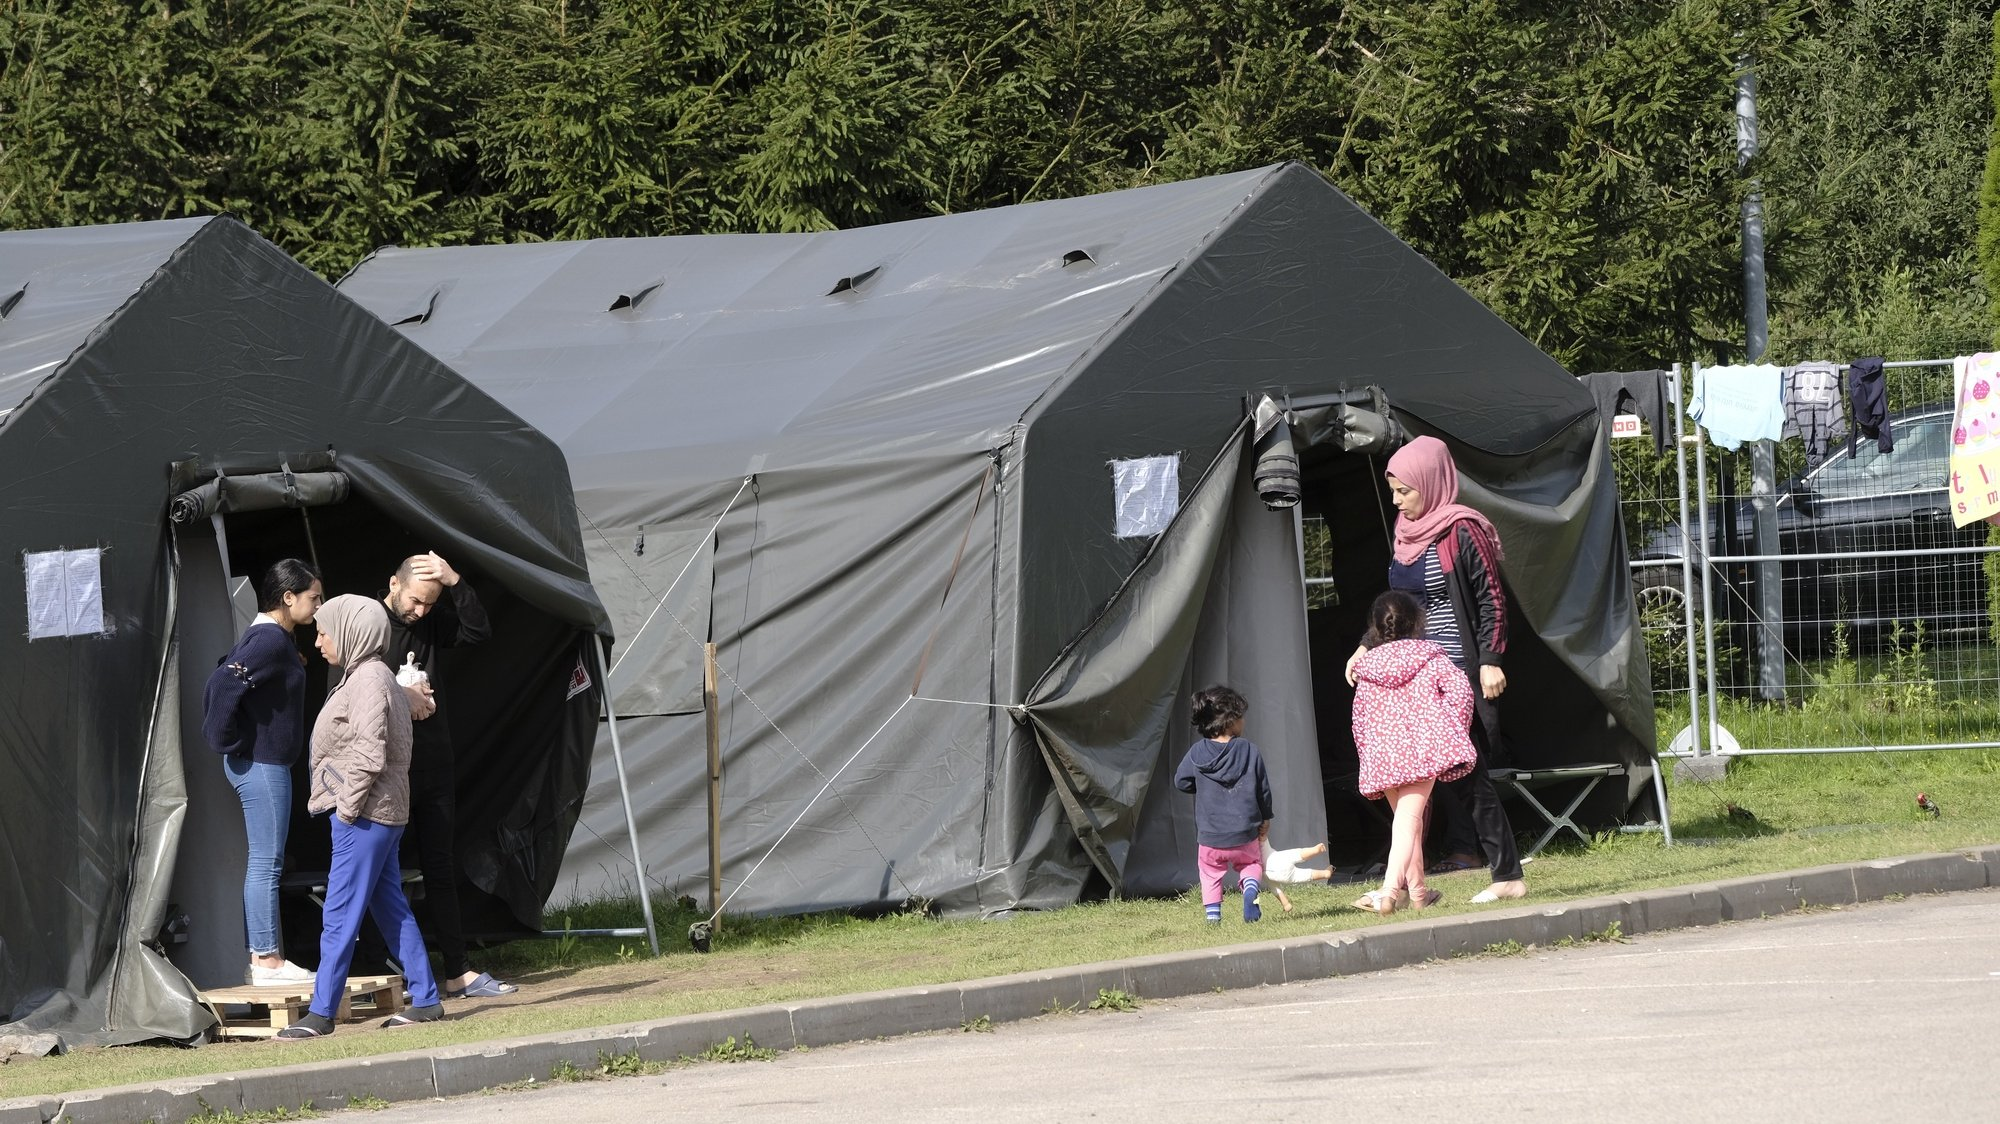 epa09428104 Migrants in the tent camp close to the Lithuania - Belarus border near Medininkai, Lithuania, 24 August 2021. More than 4,000 migrants have entered Lithuania illegally from neighbouring Belarus so far this year.  EPA/VALDA KALNINA